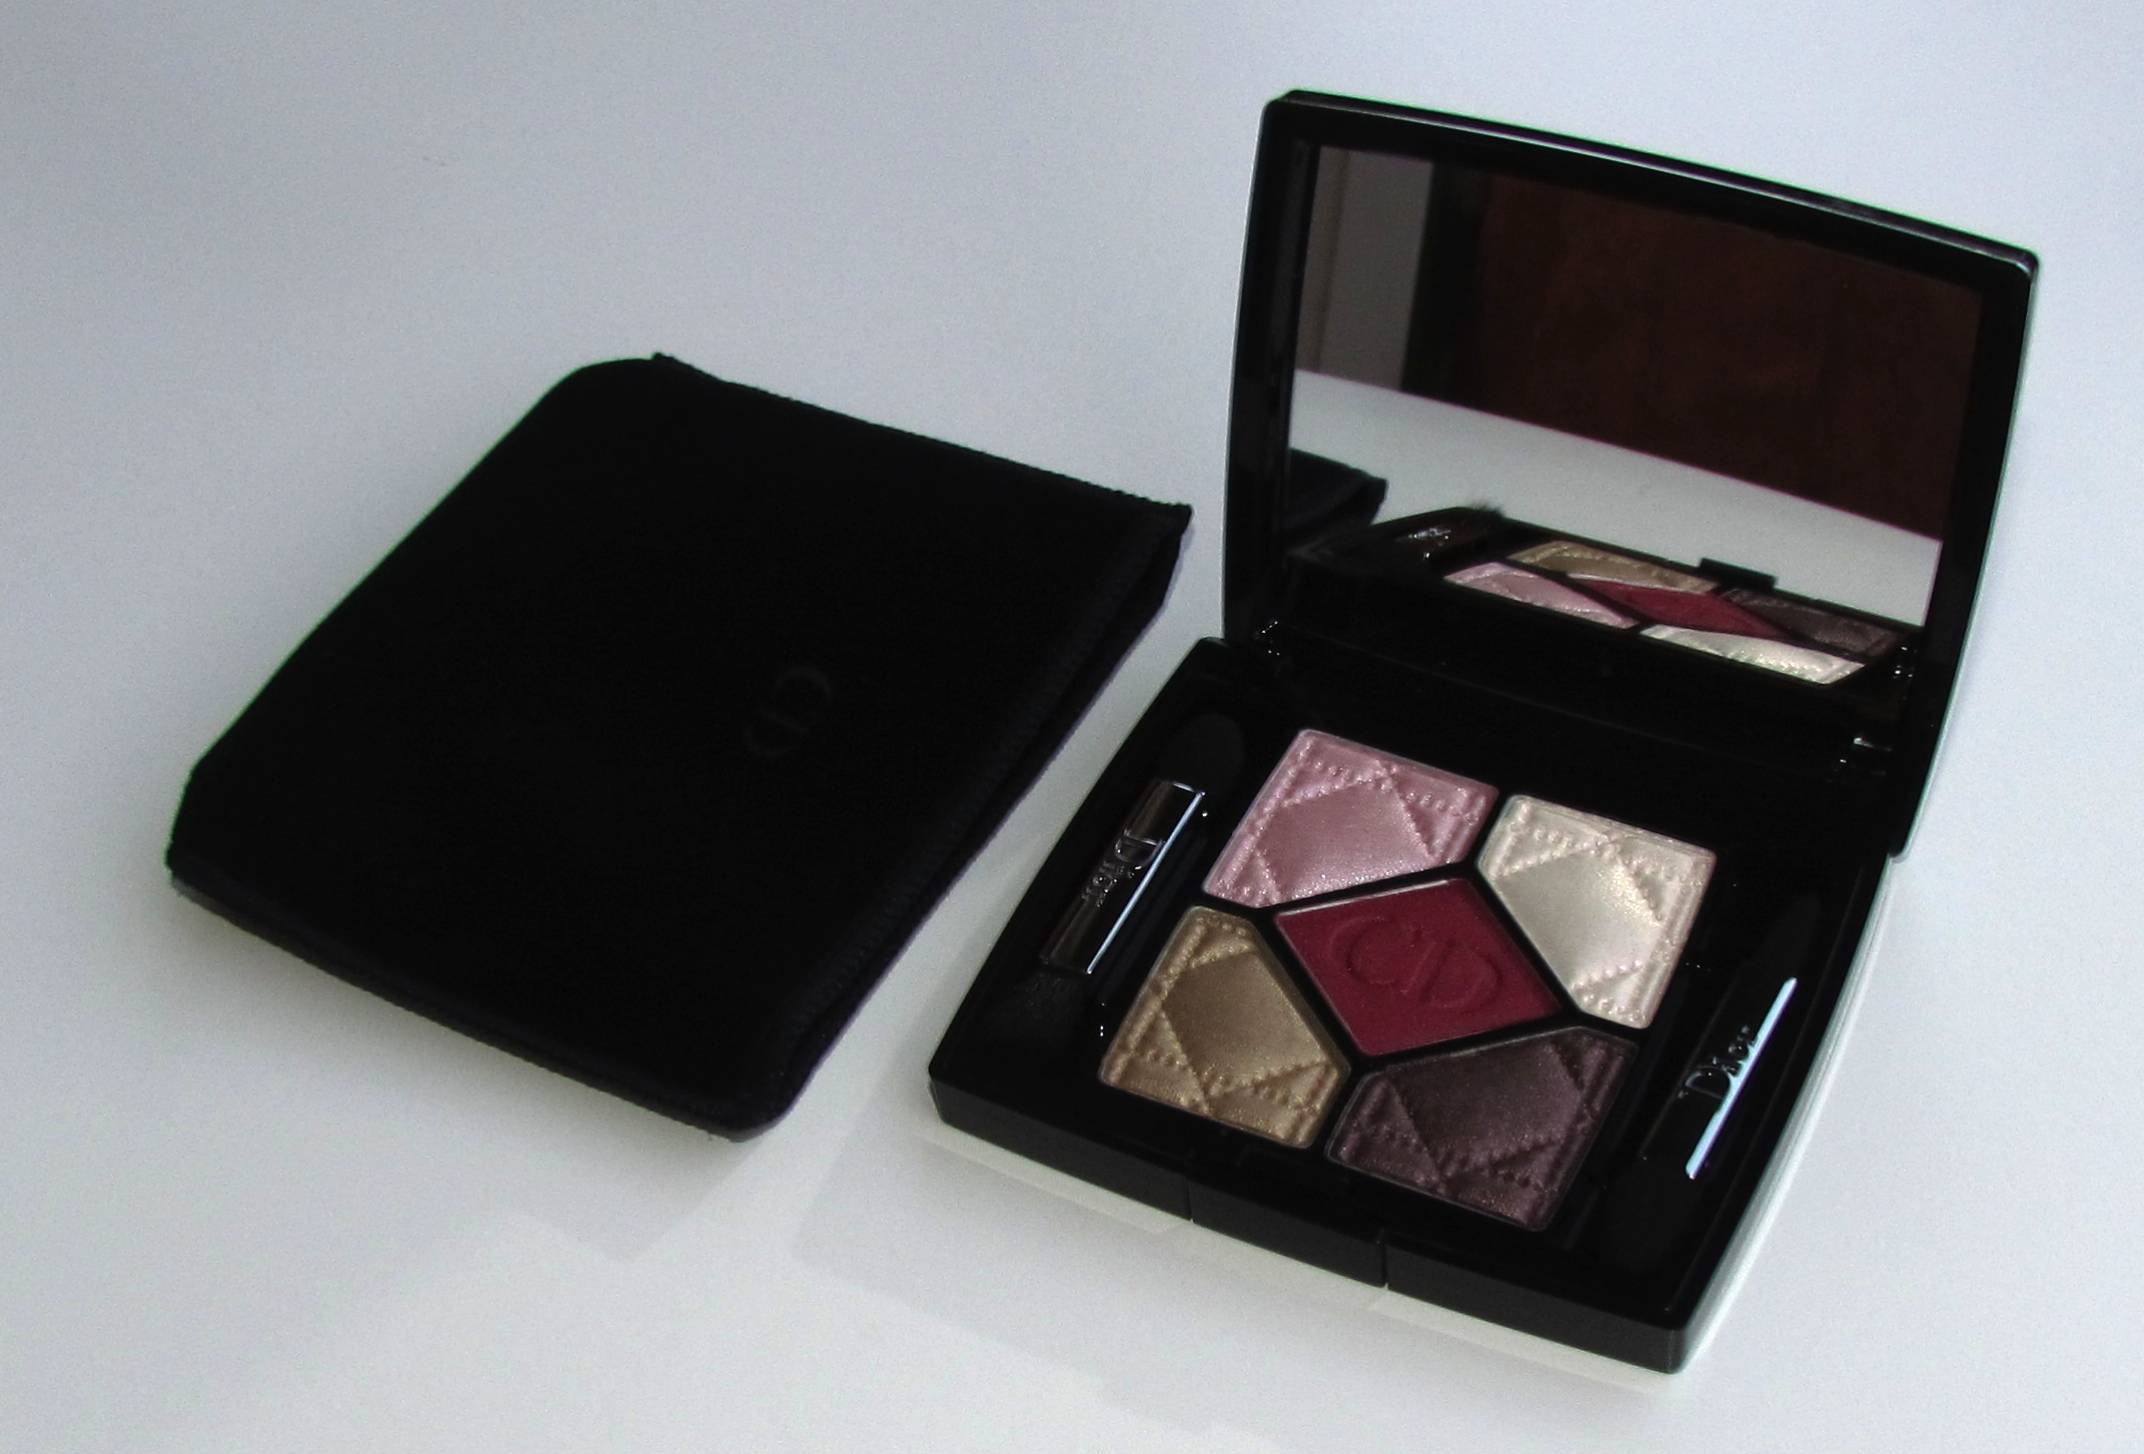 Dior 5 Couleurs Palette In Trafalgar Review And Swatches Daily